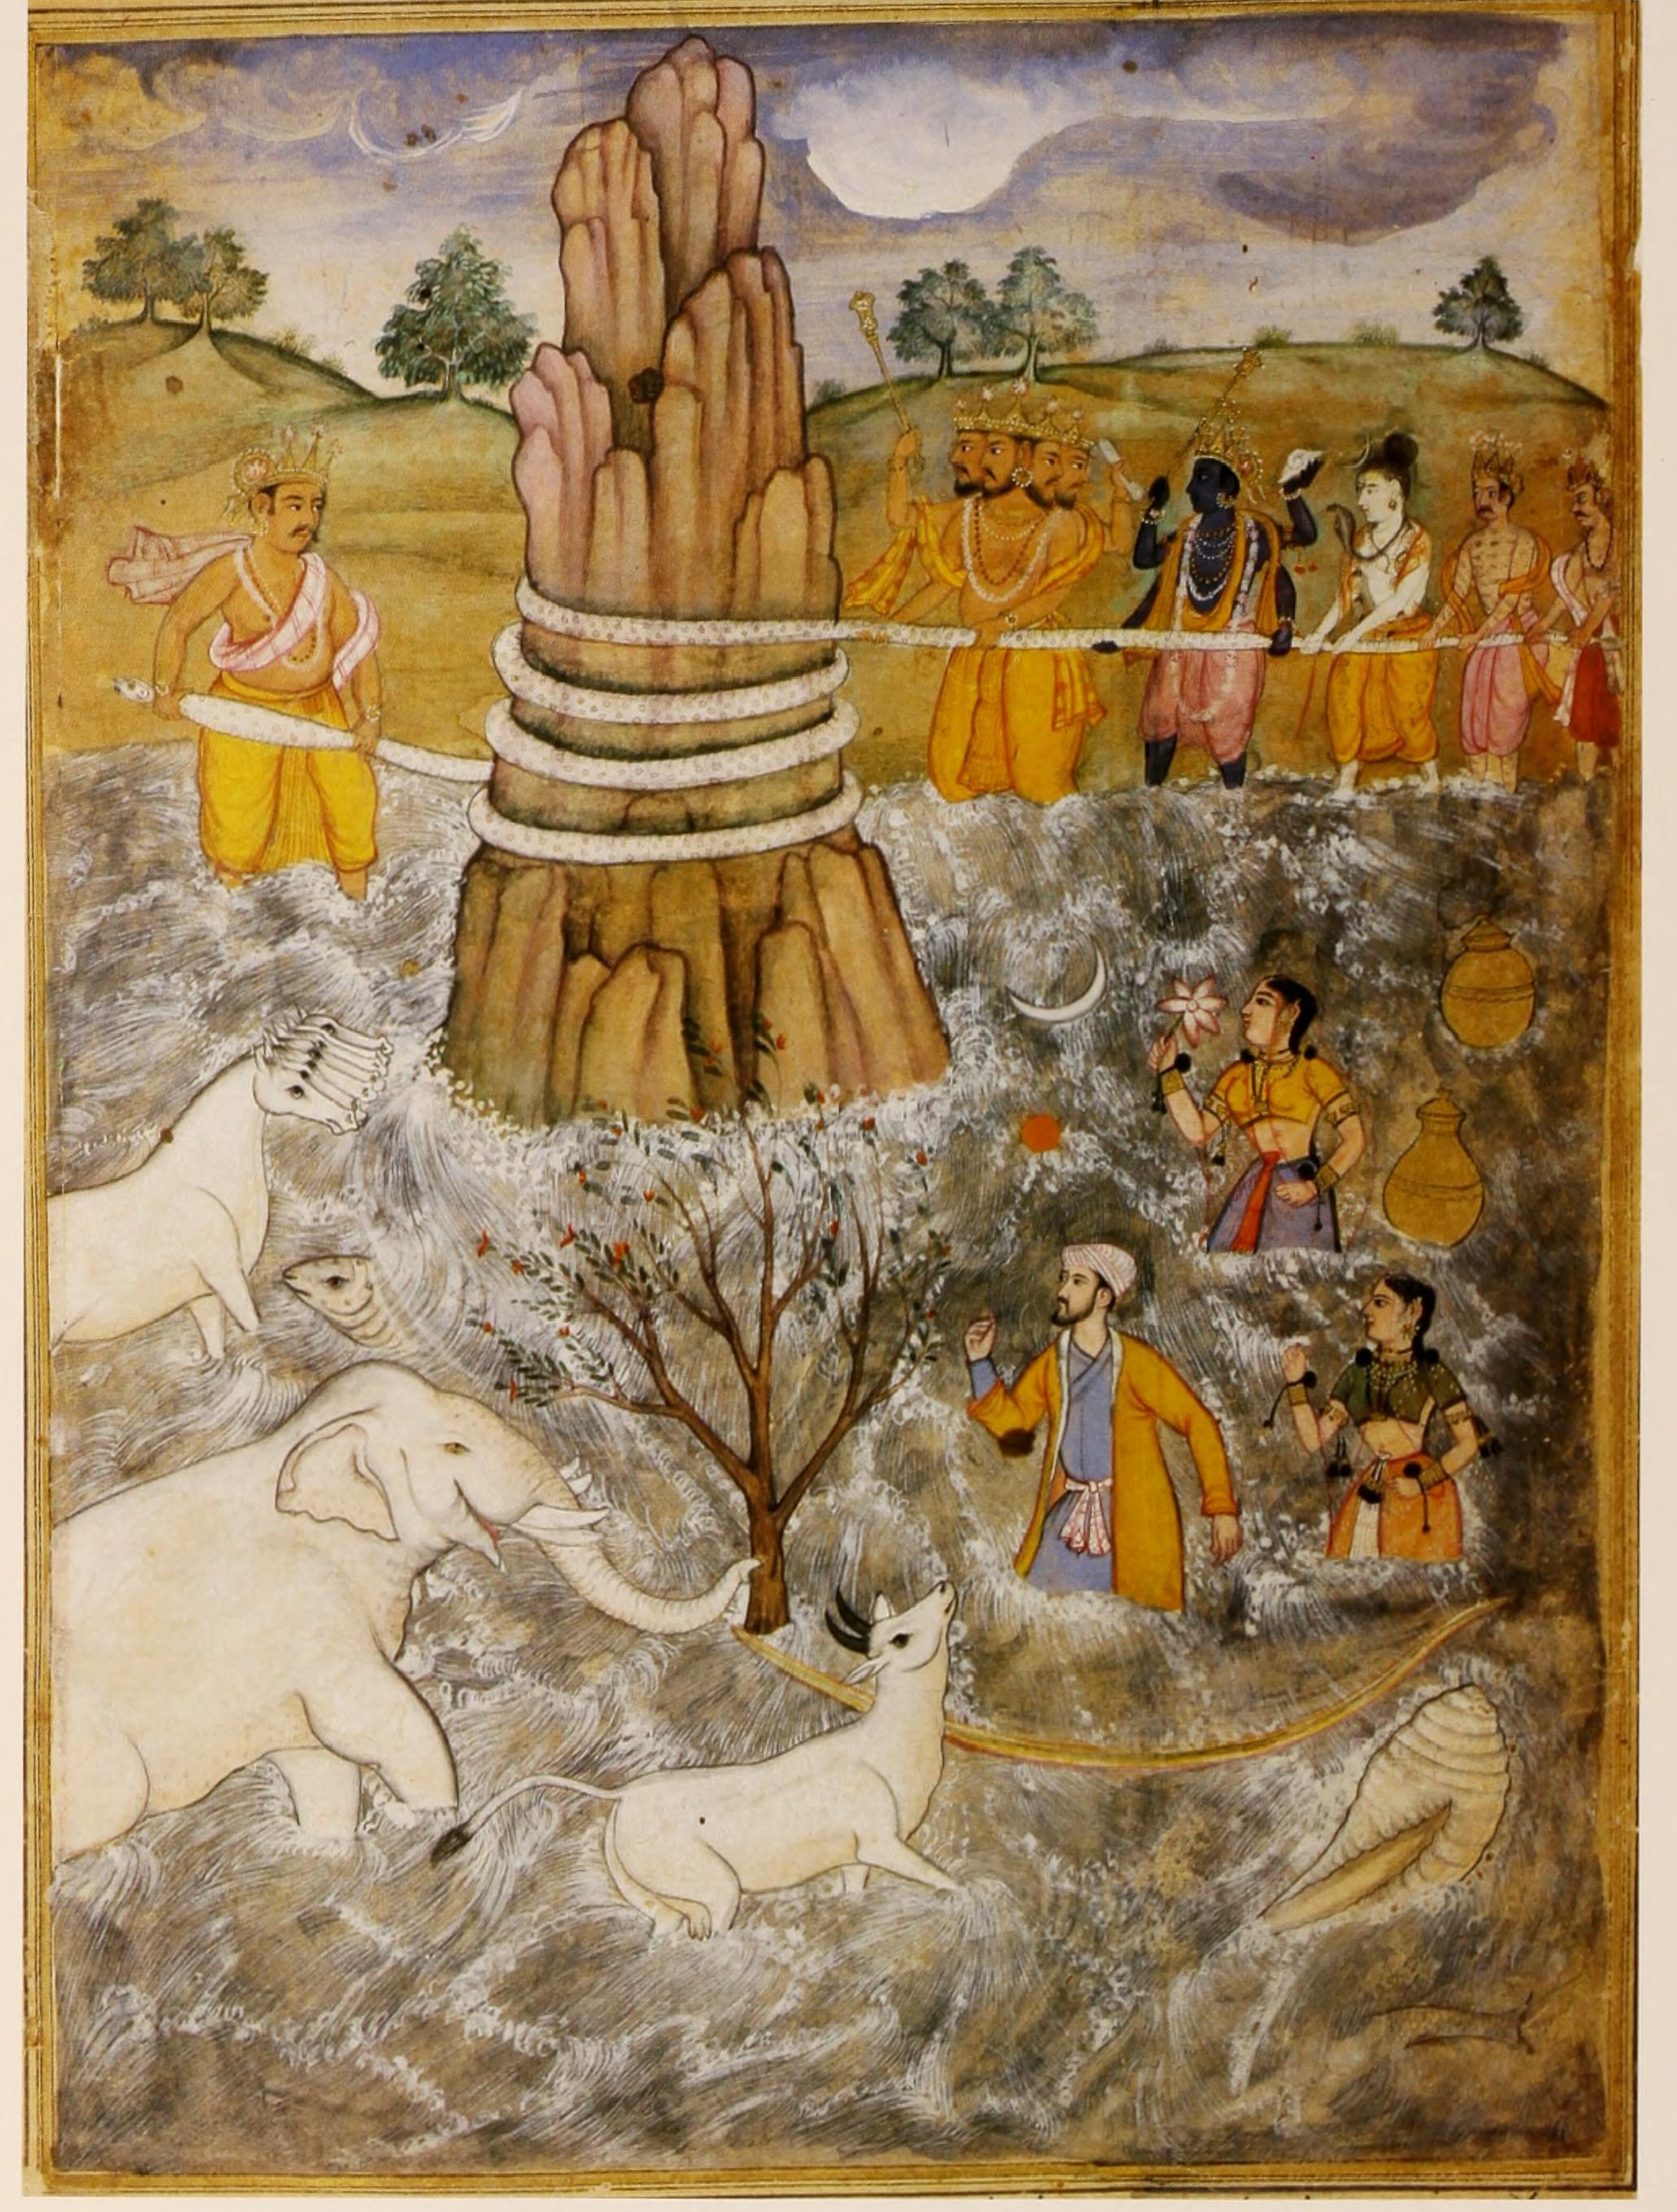 File:Churning of the ocean - Manthan.jpg